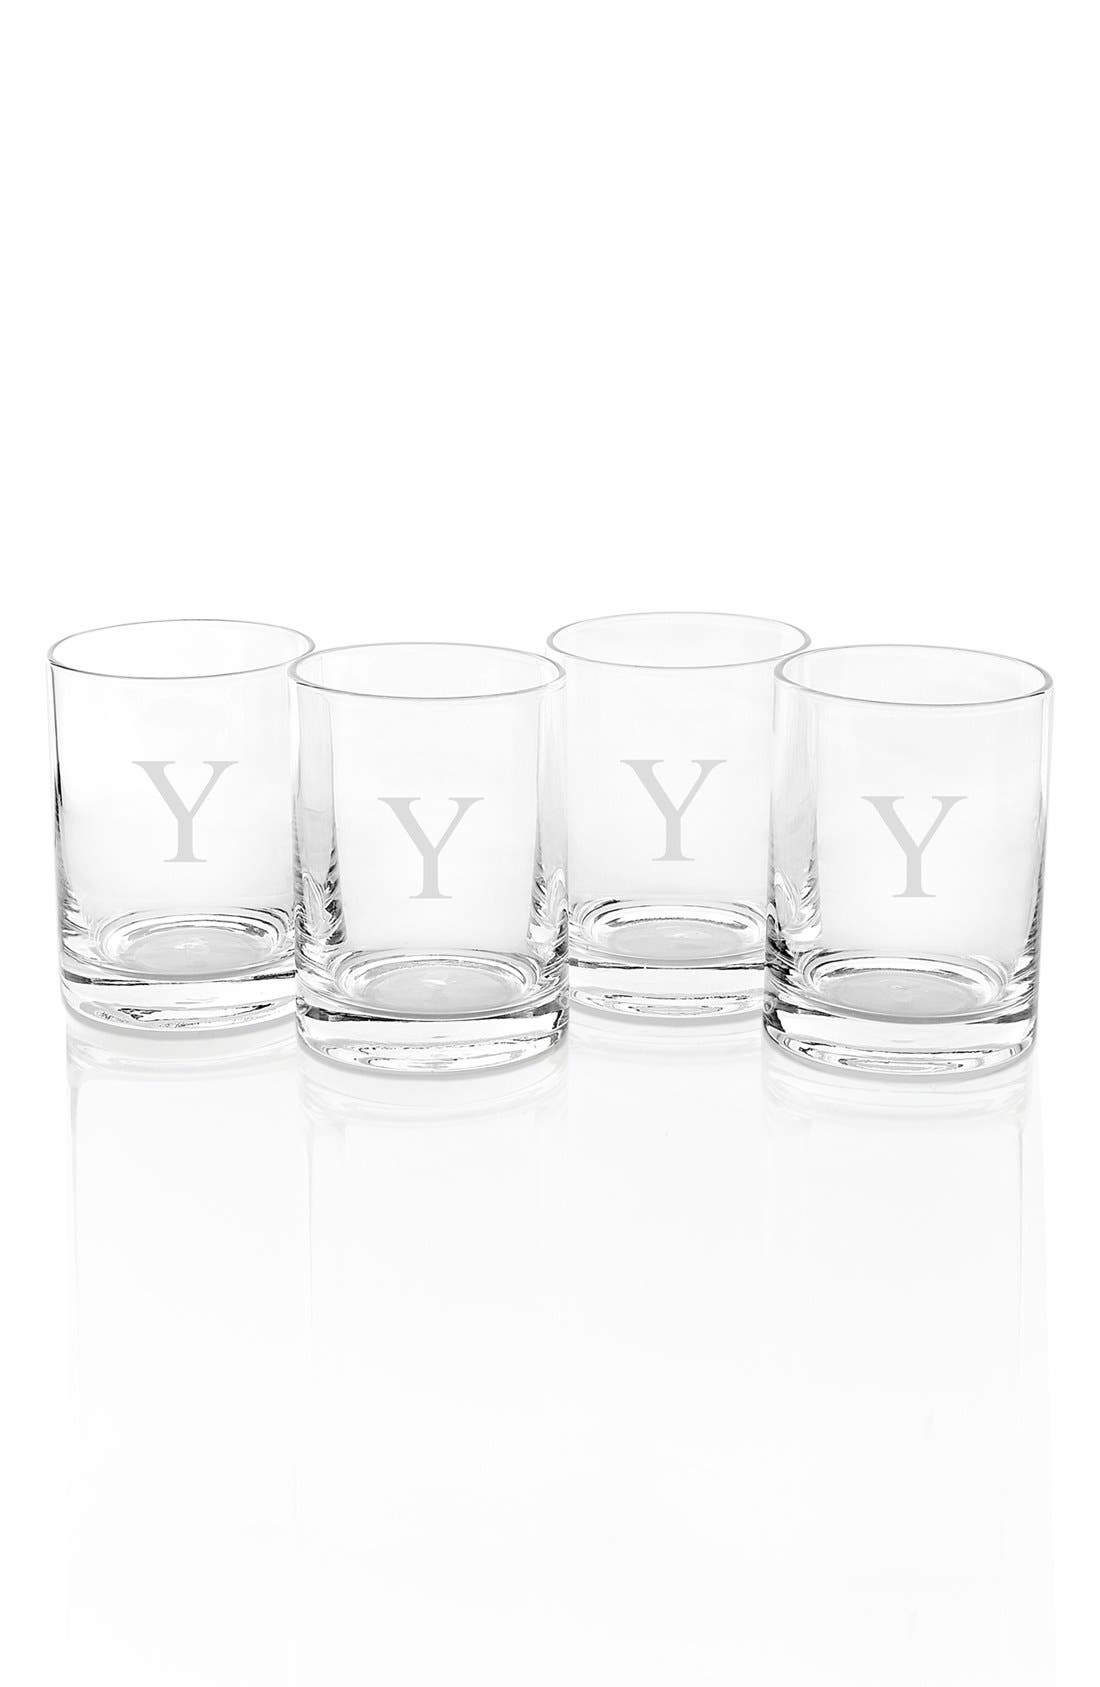 Alternate Image 1 Selected - Cathy's Concepts Monogram Drinking Glasses (Set of 4)